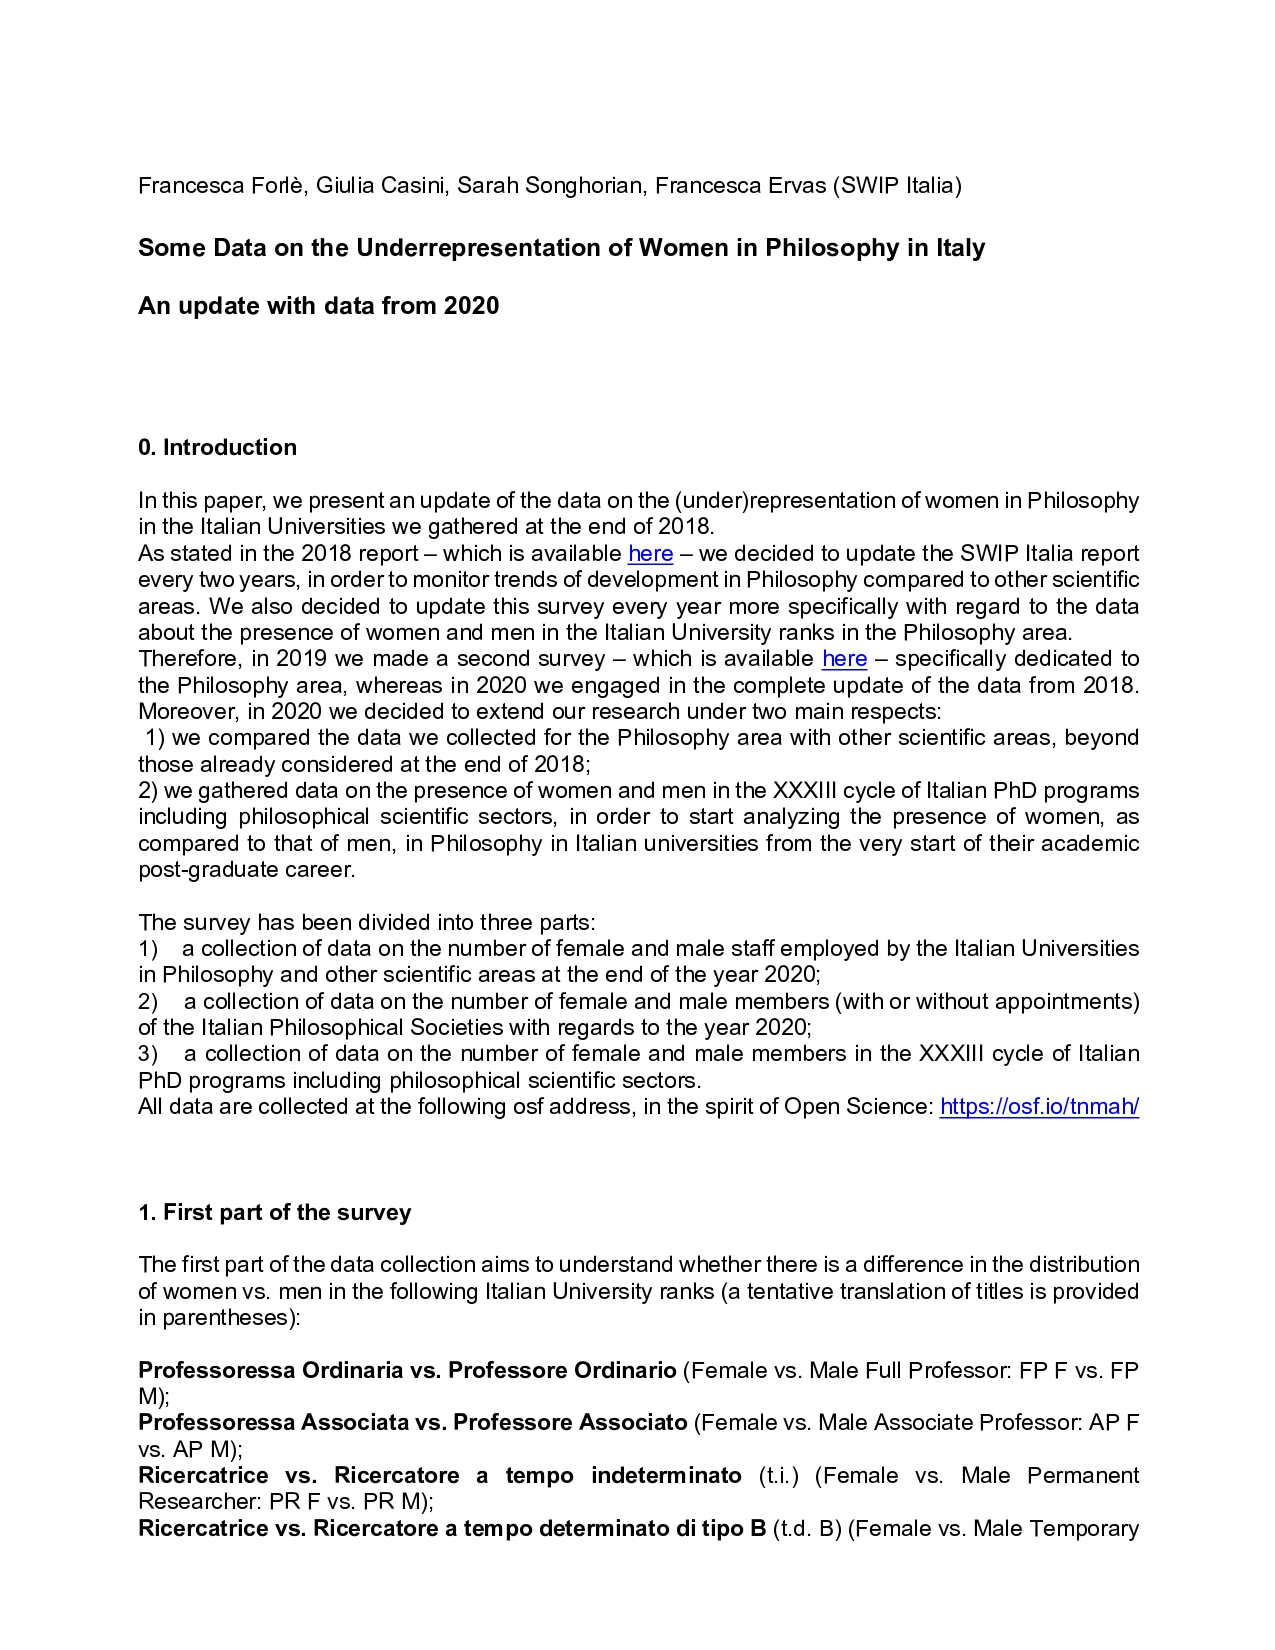 Some Data on the Underrepresentation of Women in Philosophy in Italy_2020_pages-to-jpg-0001